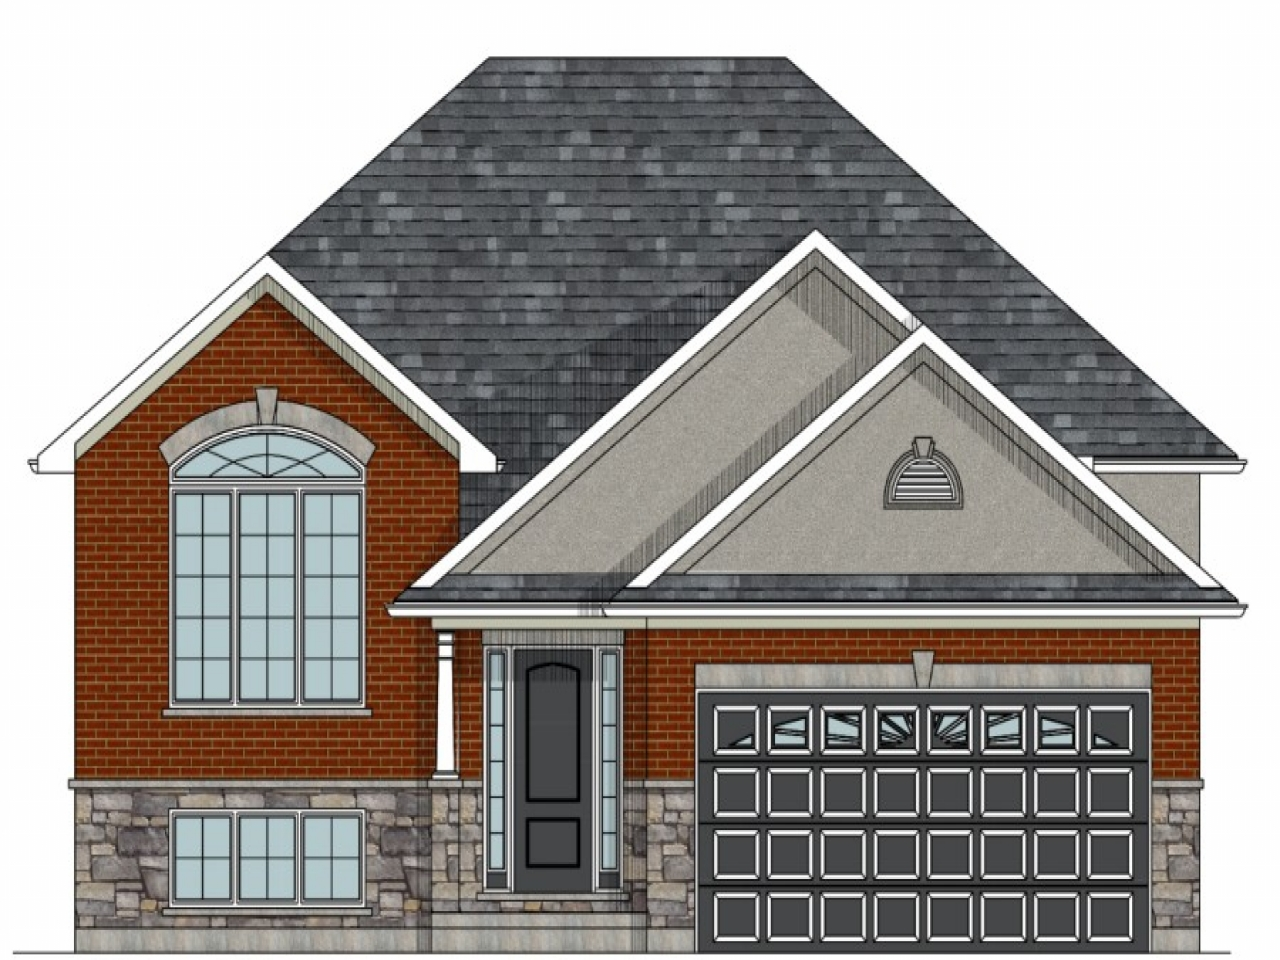 Raised bungalow canadian house plans raised bungalow house for Bungalow plans with garage